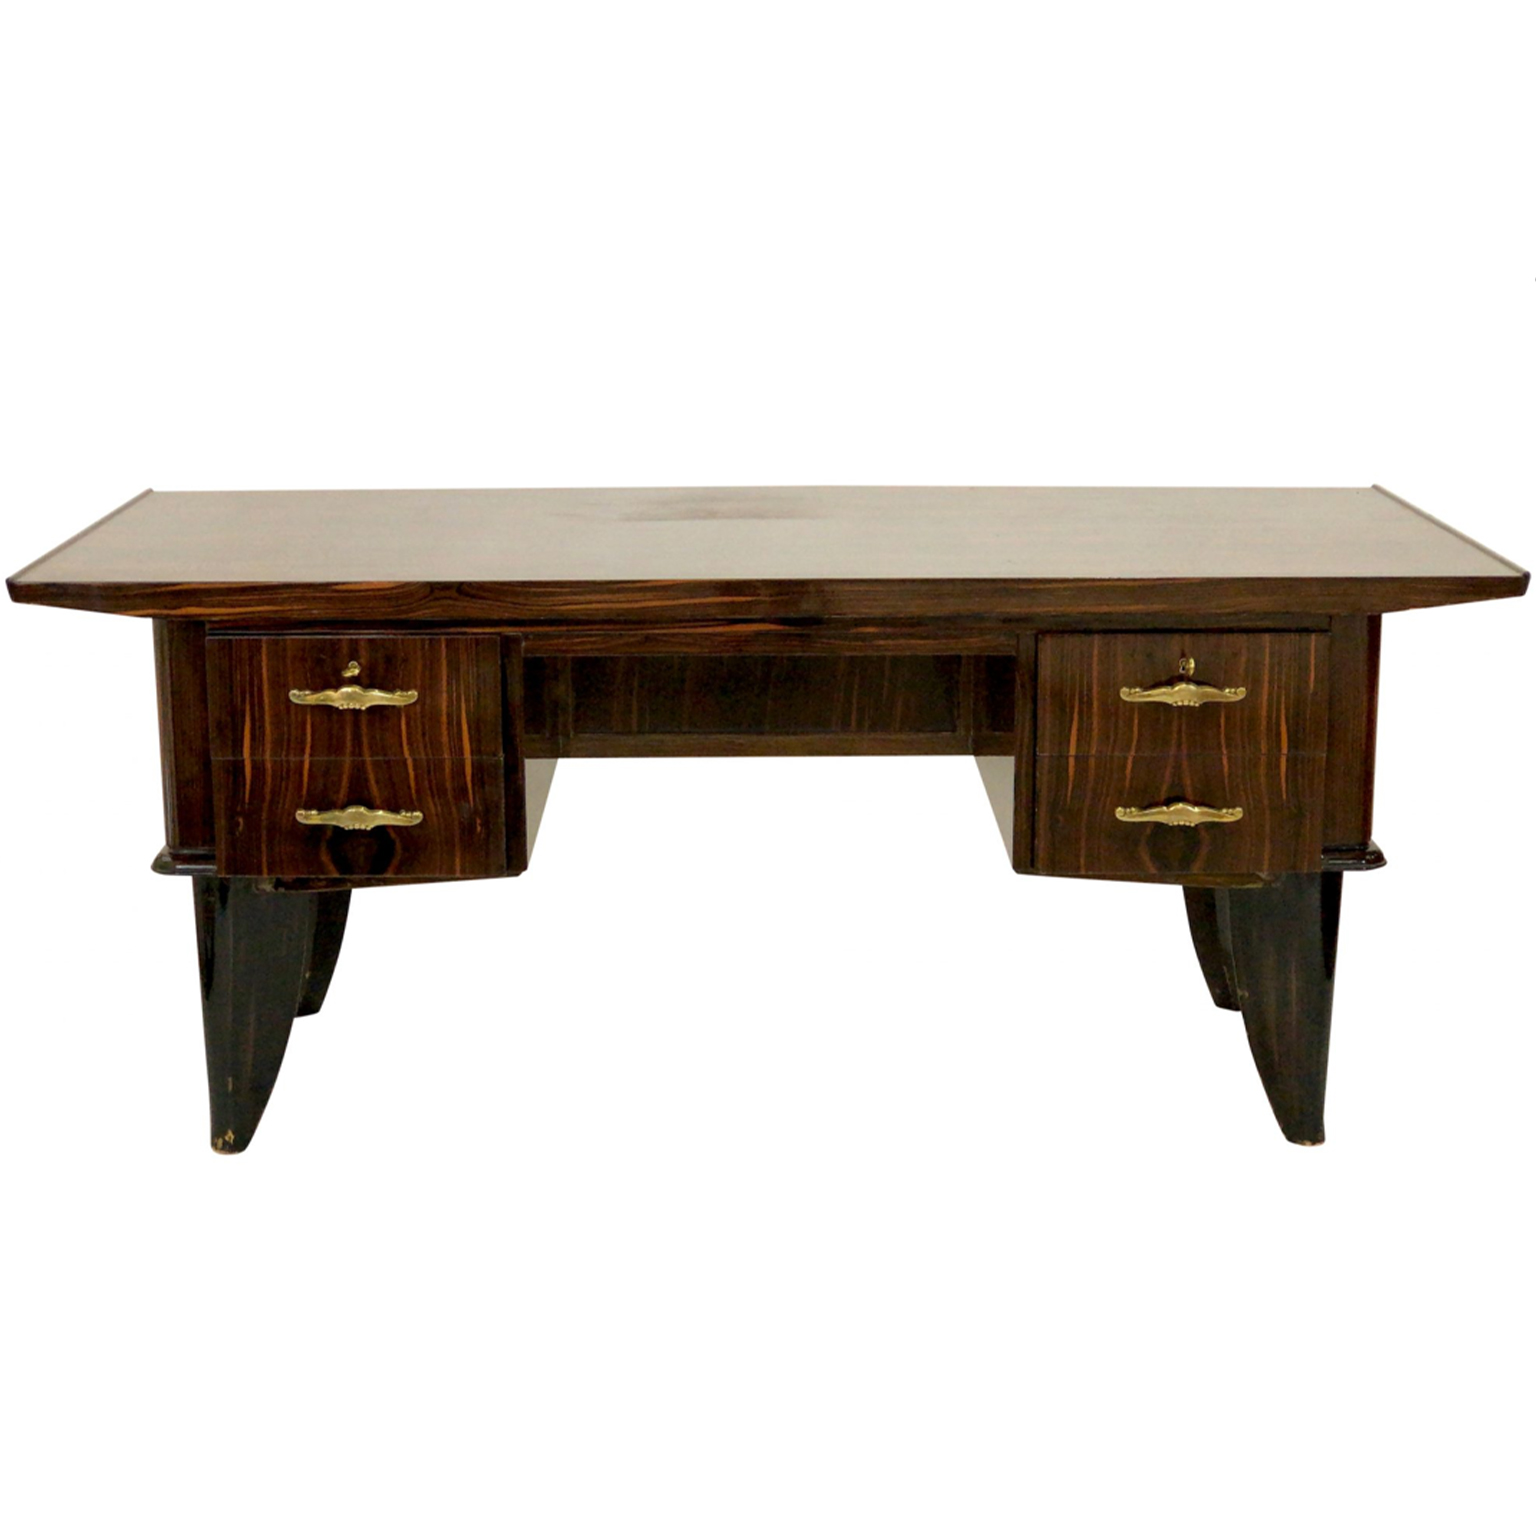 Art Deco Desk in brown Macassar wood with four drawers and shelf.